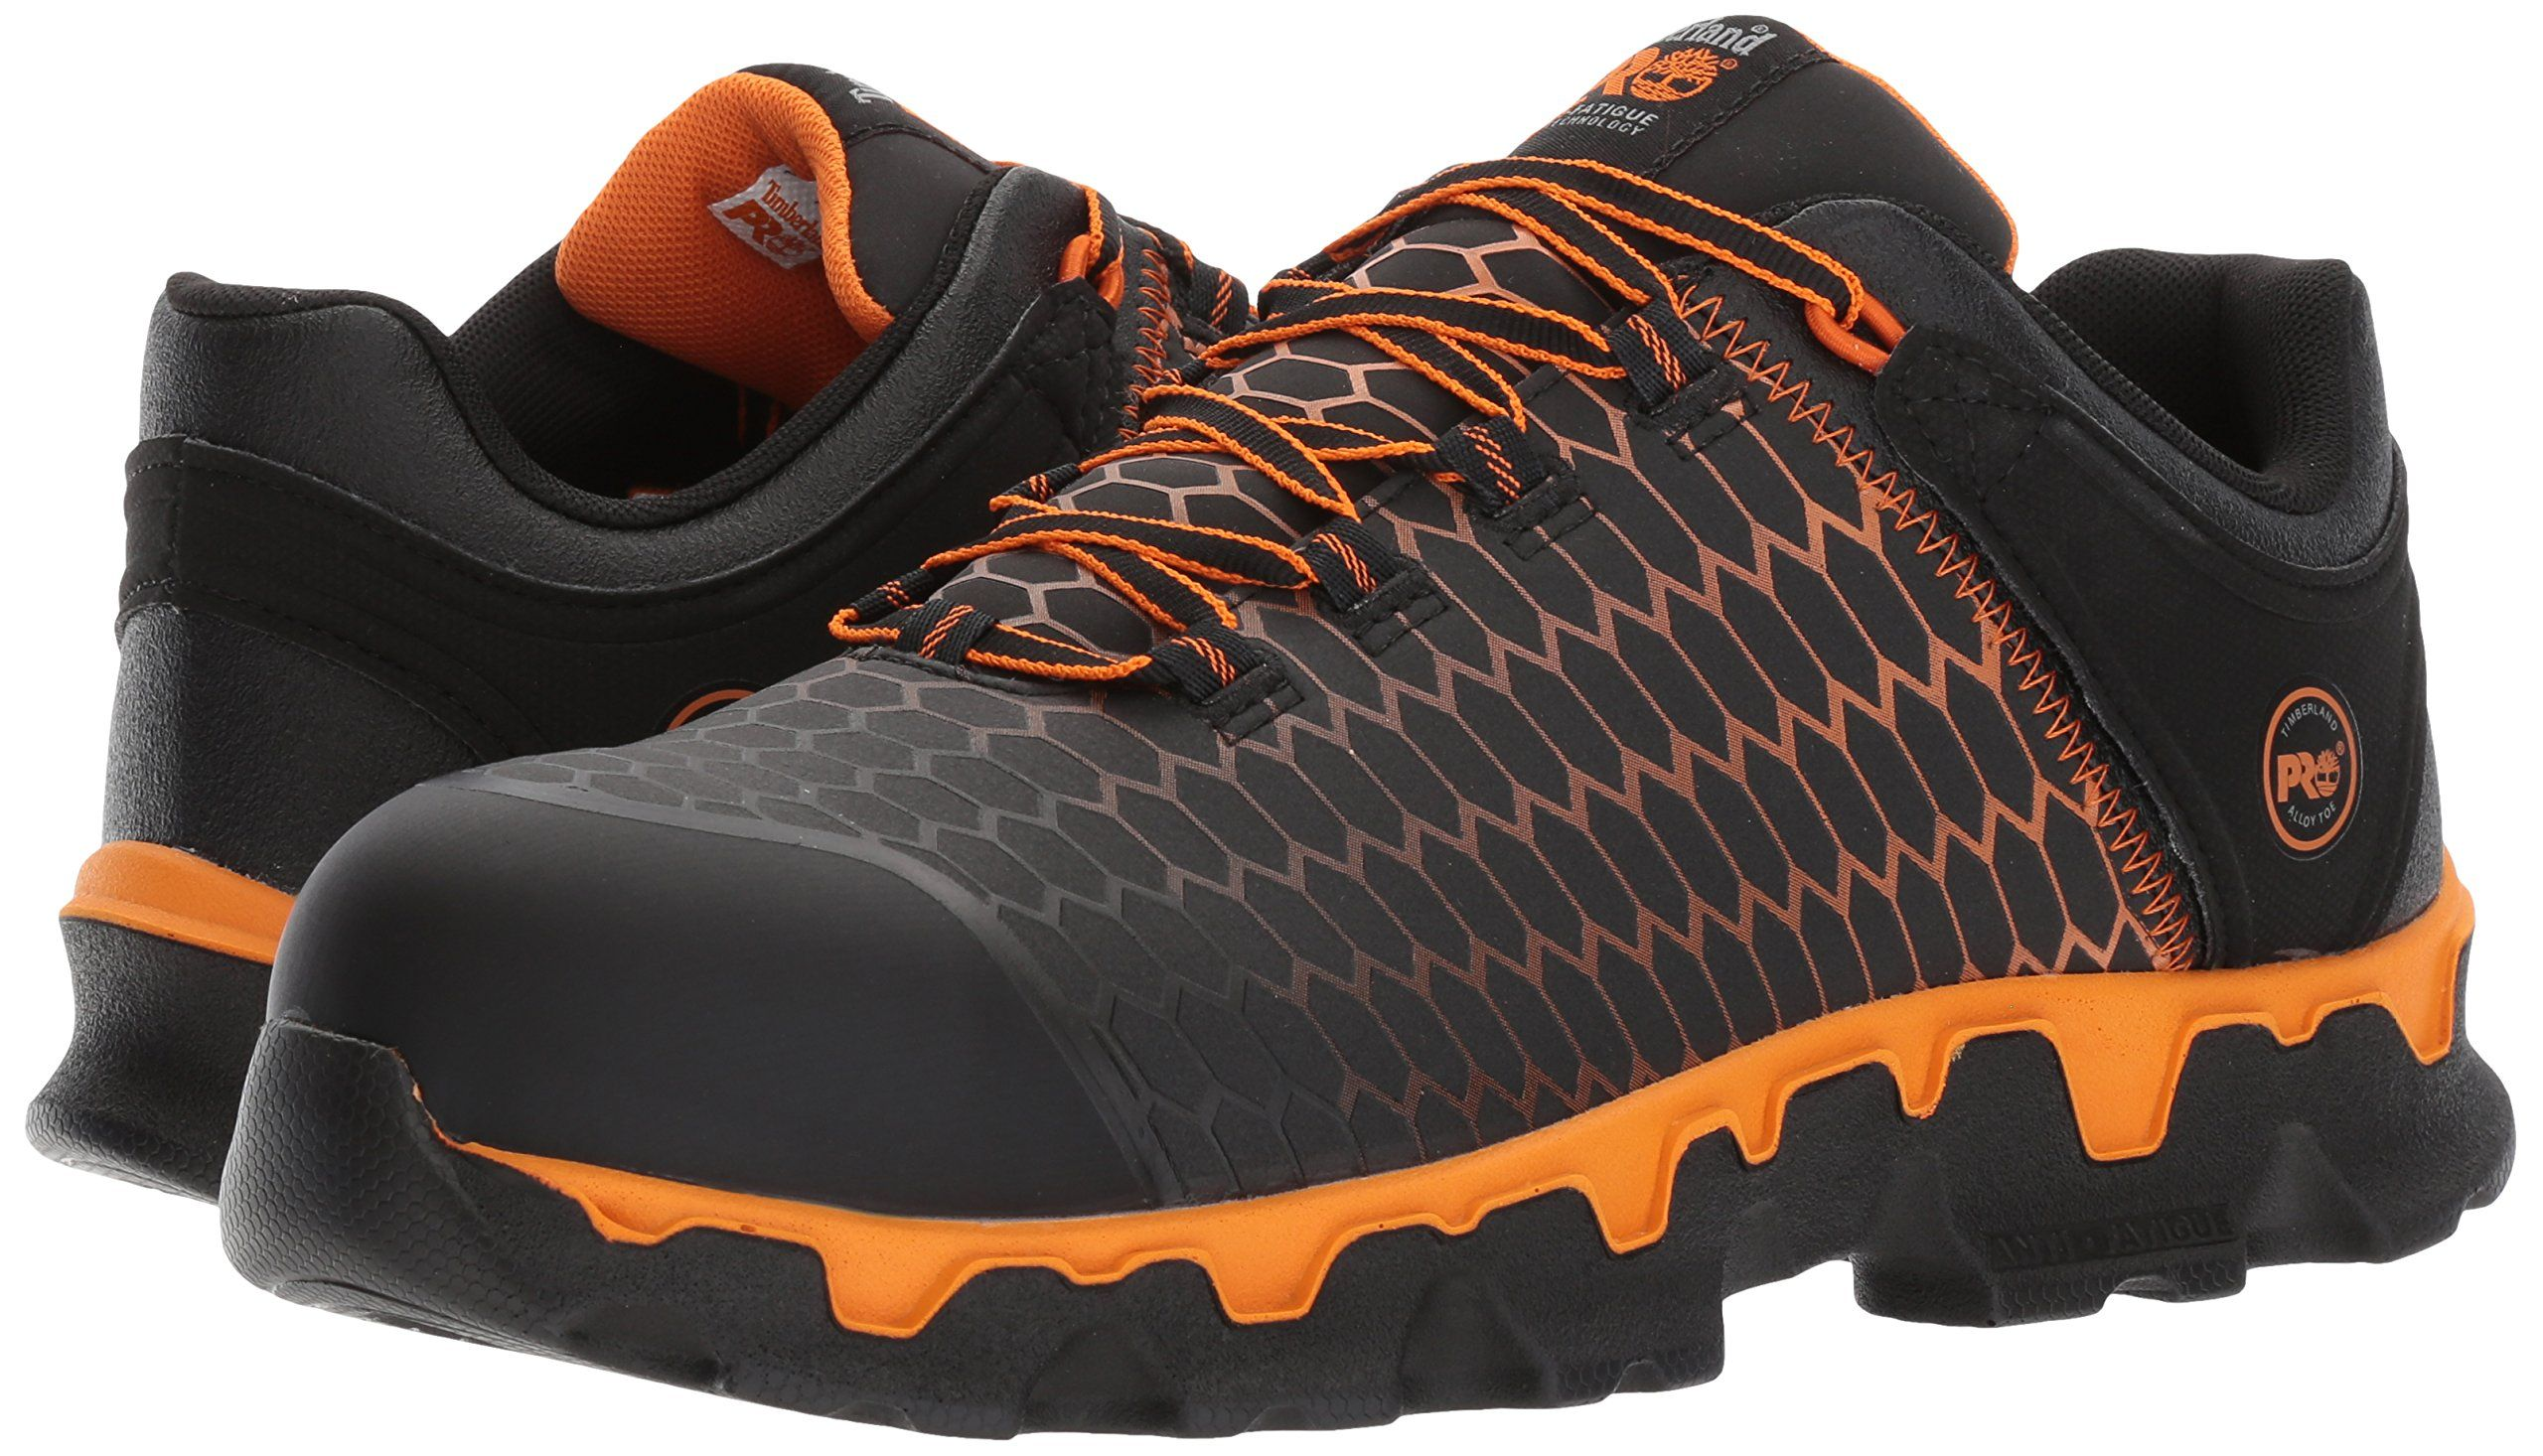 Timberland PRO Men's Powertrain Sport Alloy Toe EH Industrial and Construction Shoe, Black Synthetic/Orange, 7.5 M US